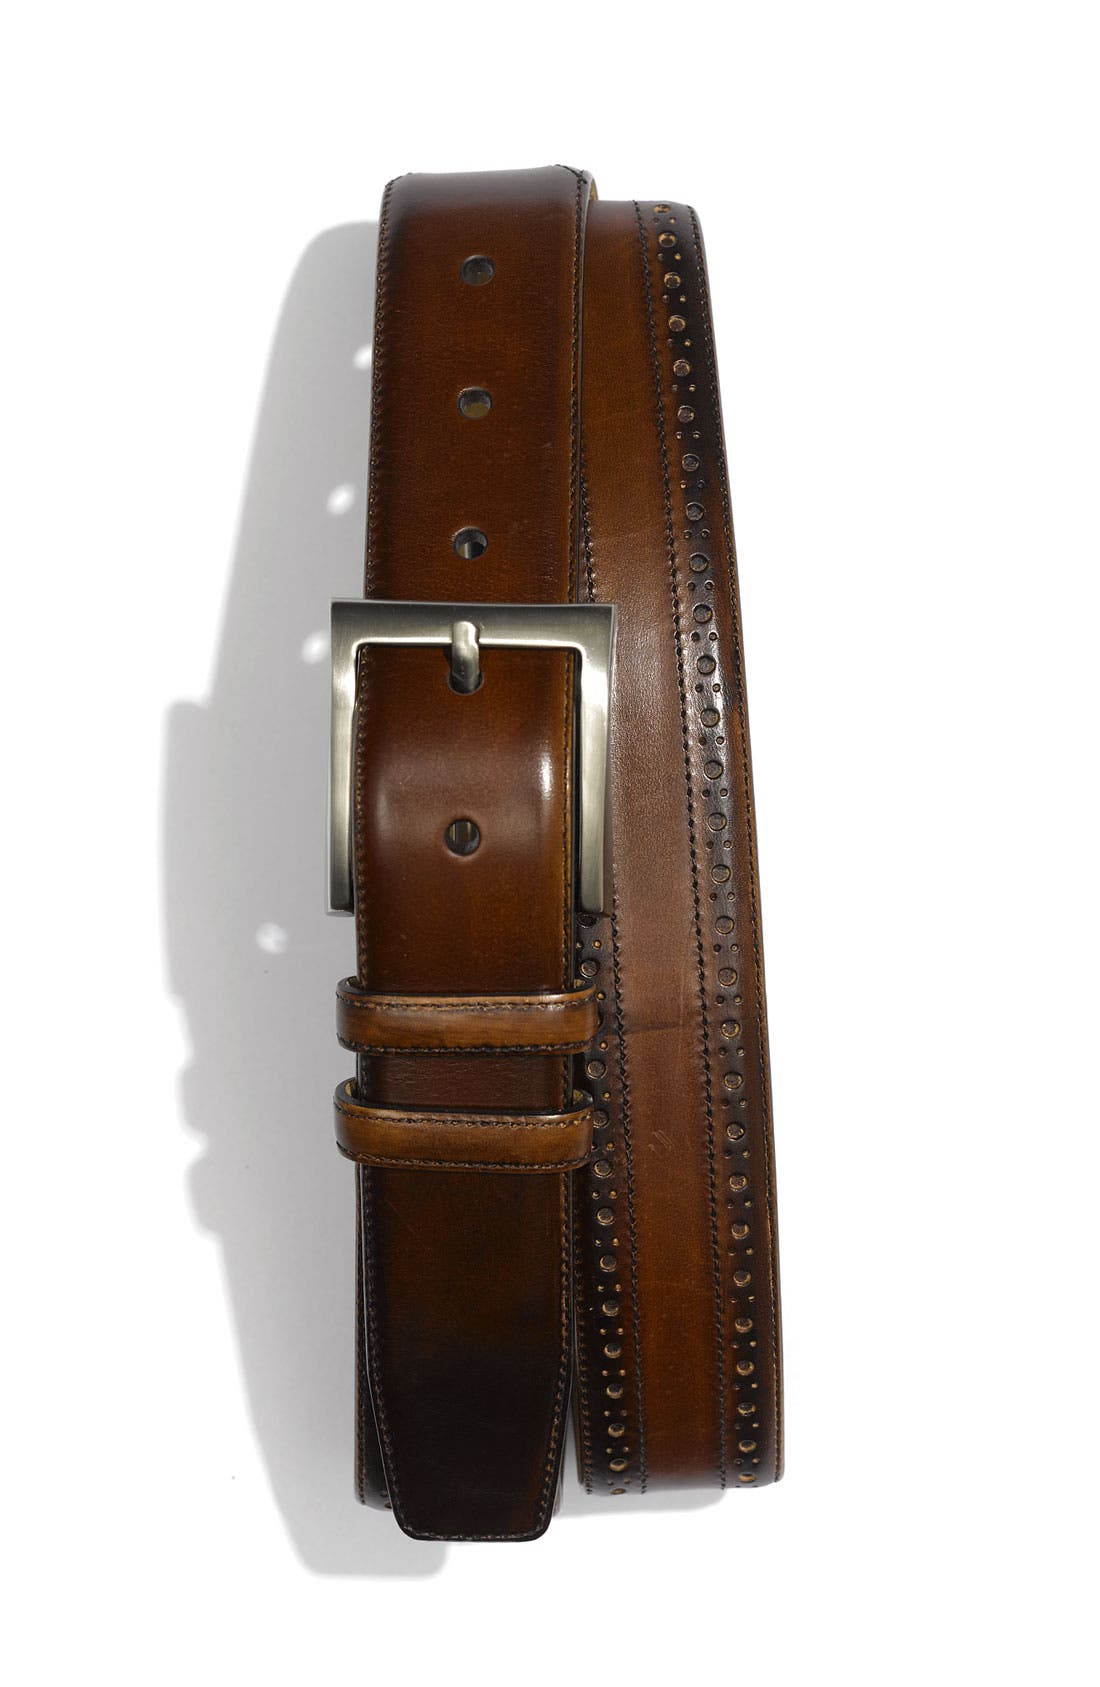 Main Image - Mezlan 'Parma' Brogue Detail Belt